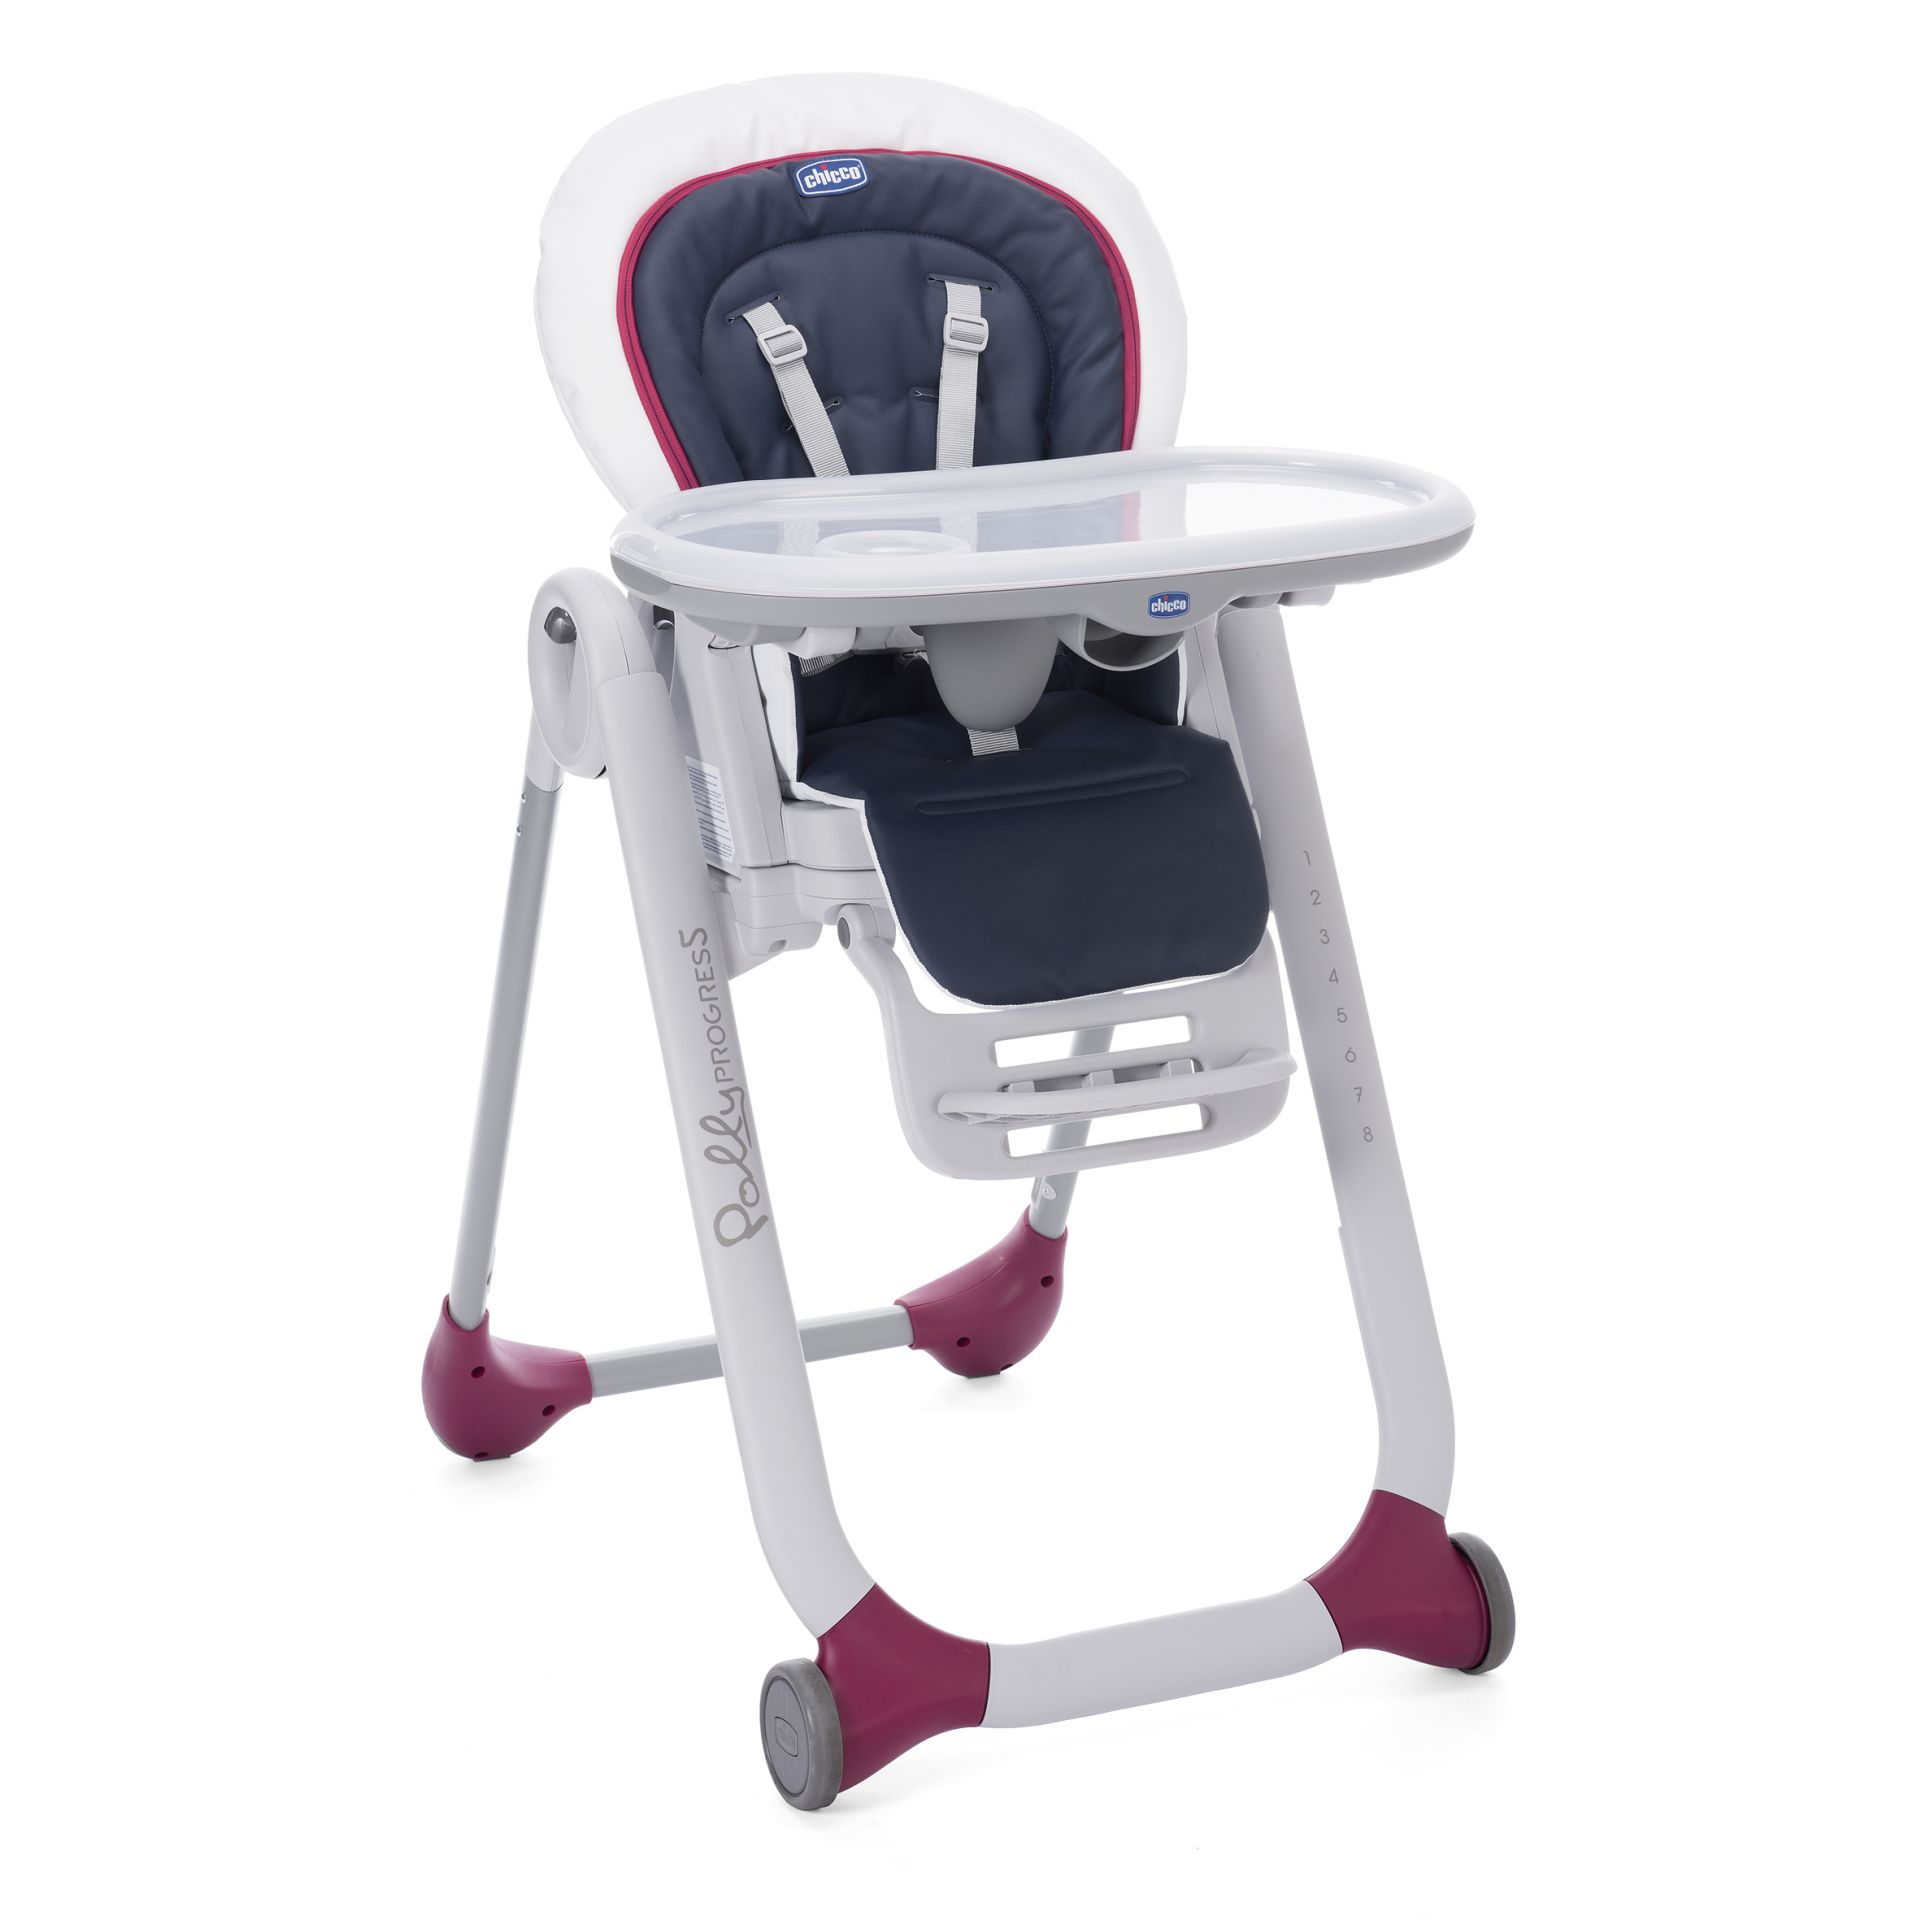 Superb Chicco High Chair Polly Progres5 Navy 2017   Large Image 1 ...